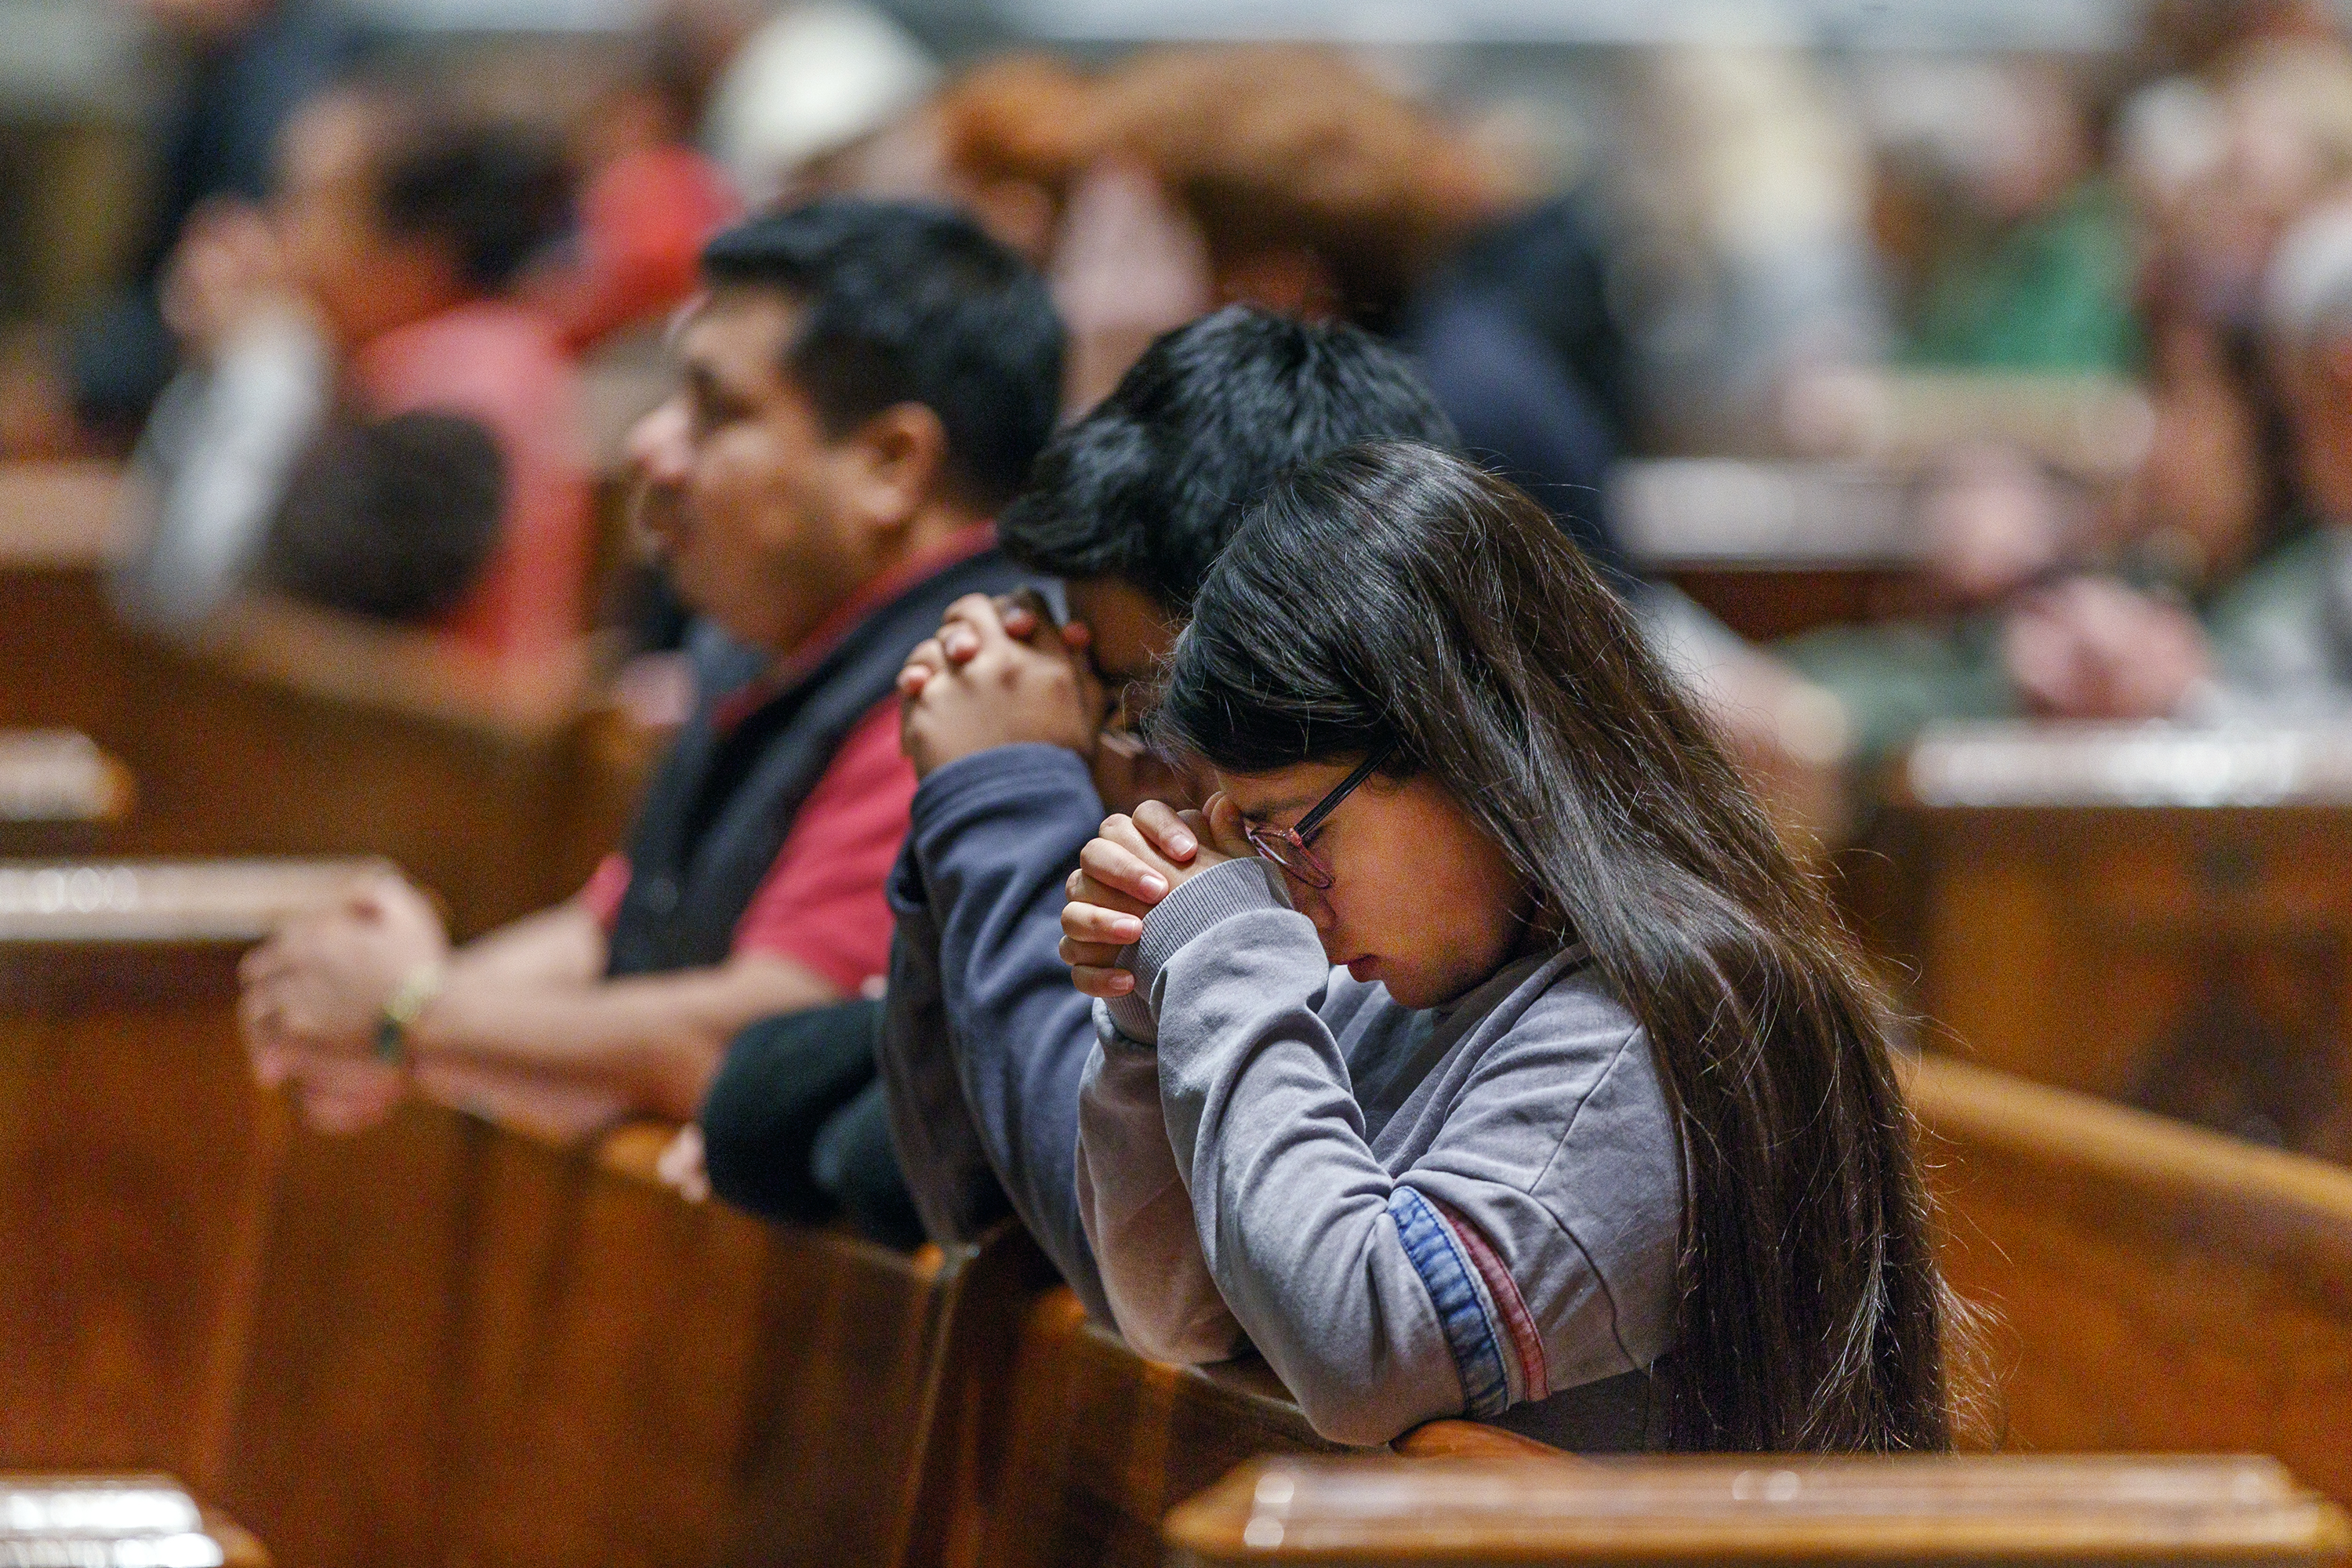 A family prays at the 9:30 morning mass at the Basilica of St Peter and Paul on October 28, 2018, as Monsignor Louis A. D'Addezio offers up prayers for the families of those killed and injured at the synagogue shooting in Pittsburgh on Saturday.